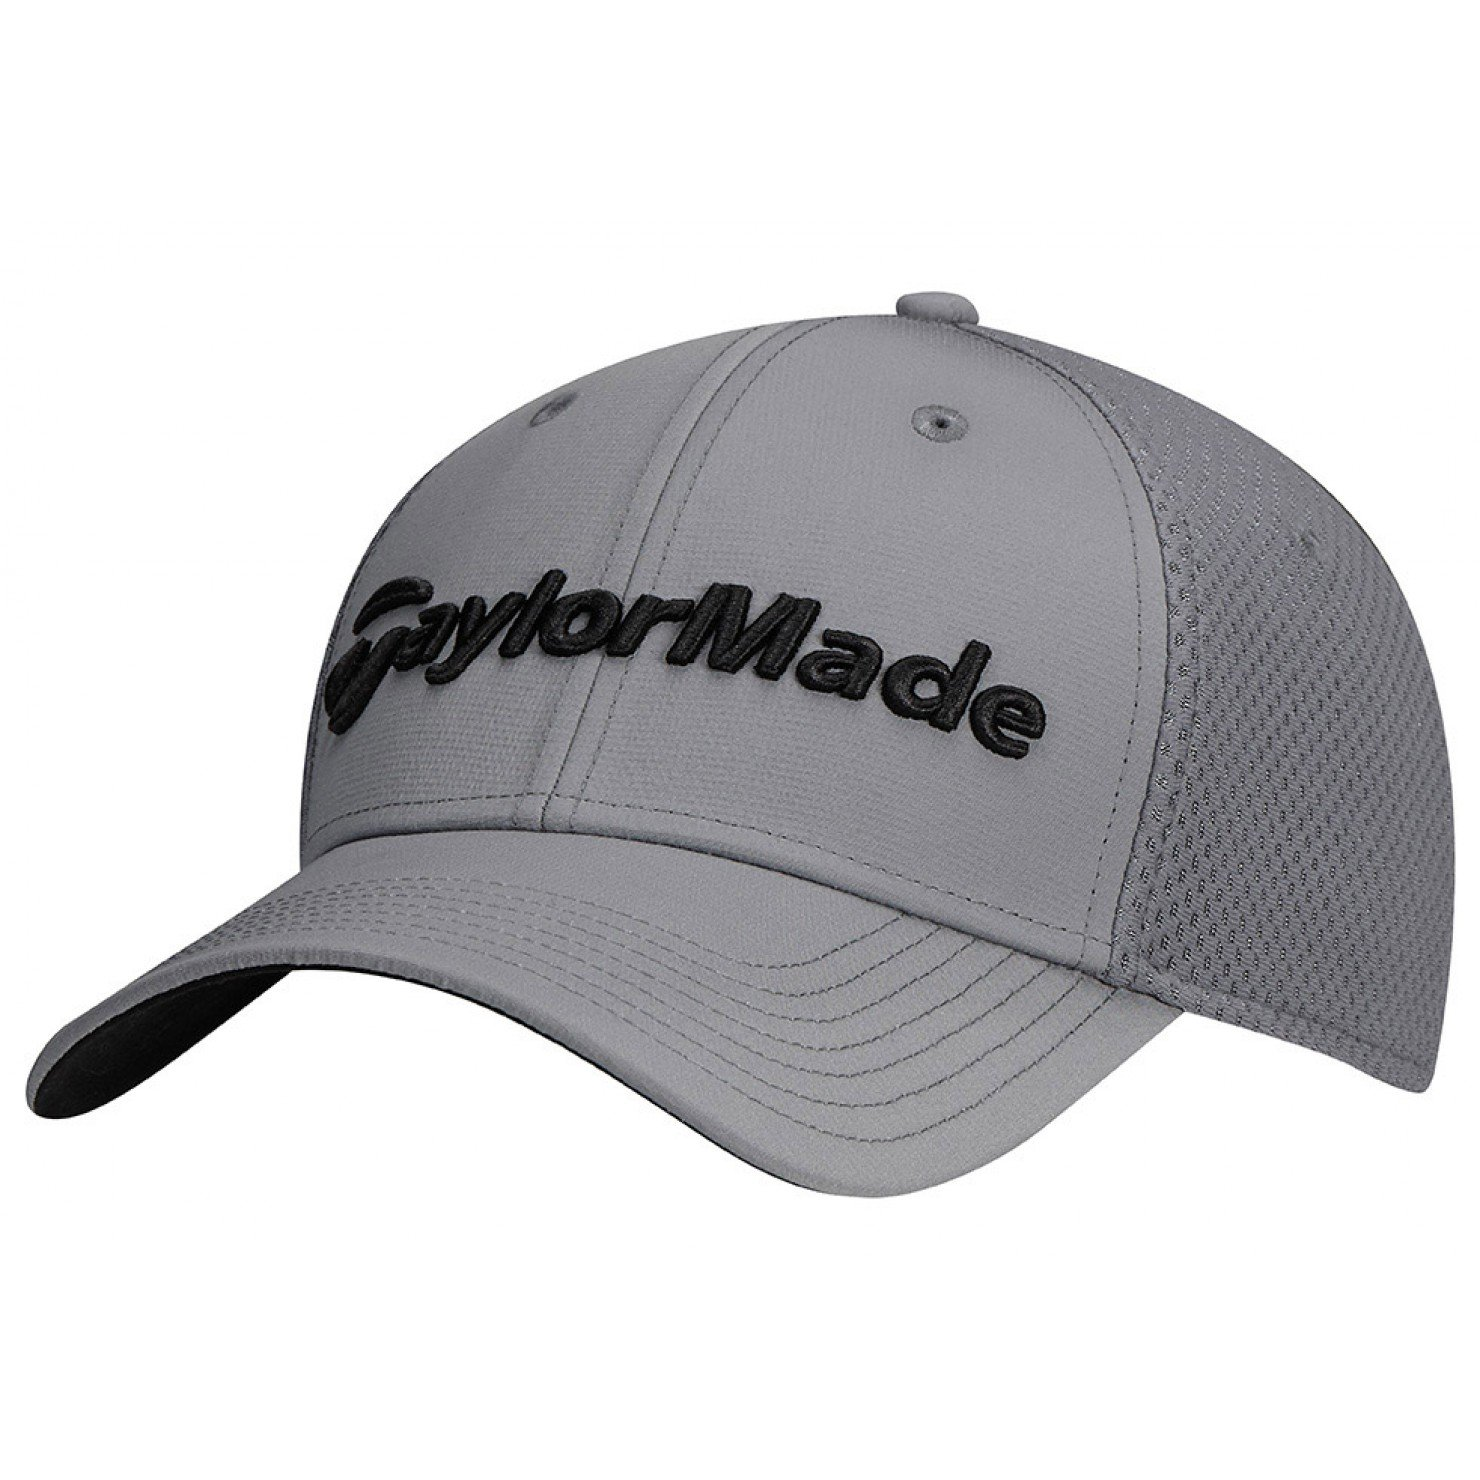 TaylorMade Golf 2017 performance cage hat grey s/m